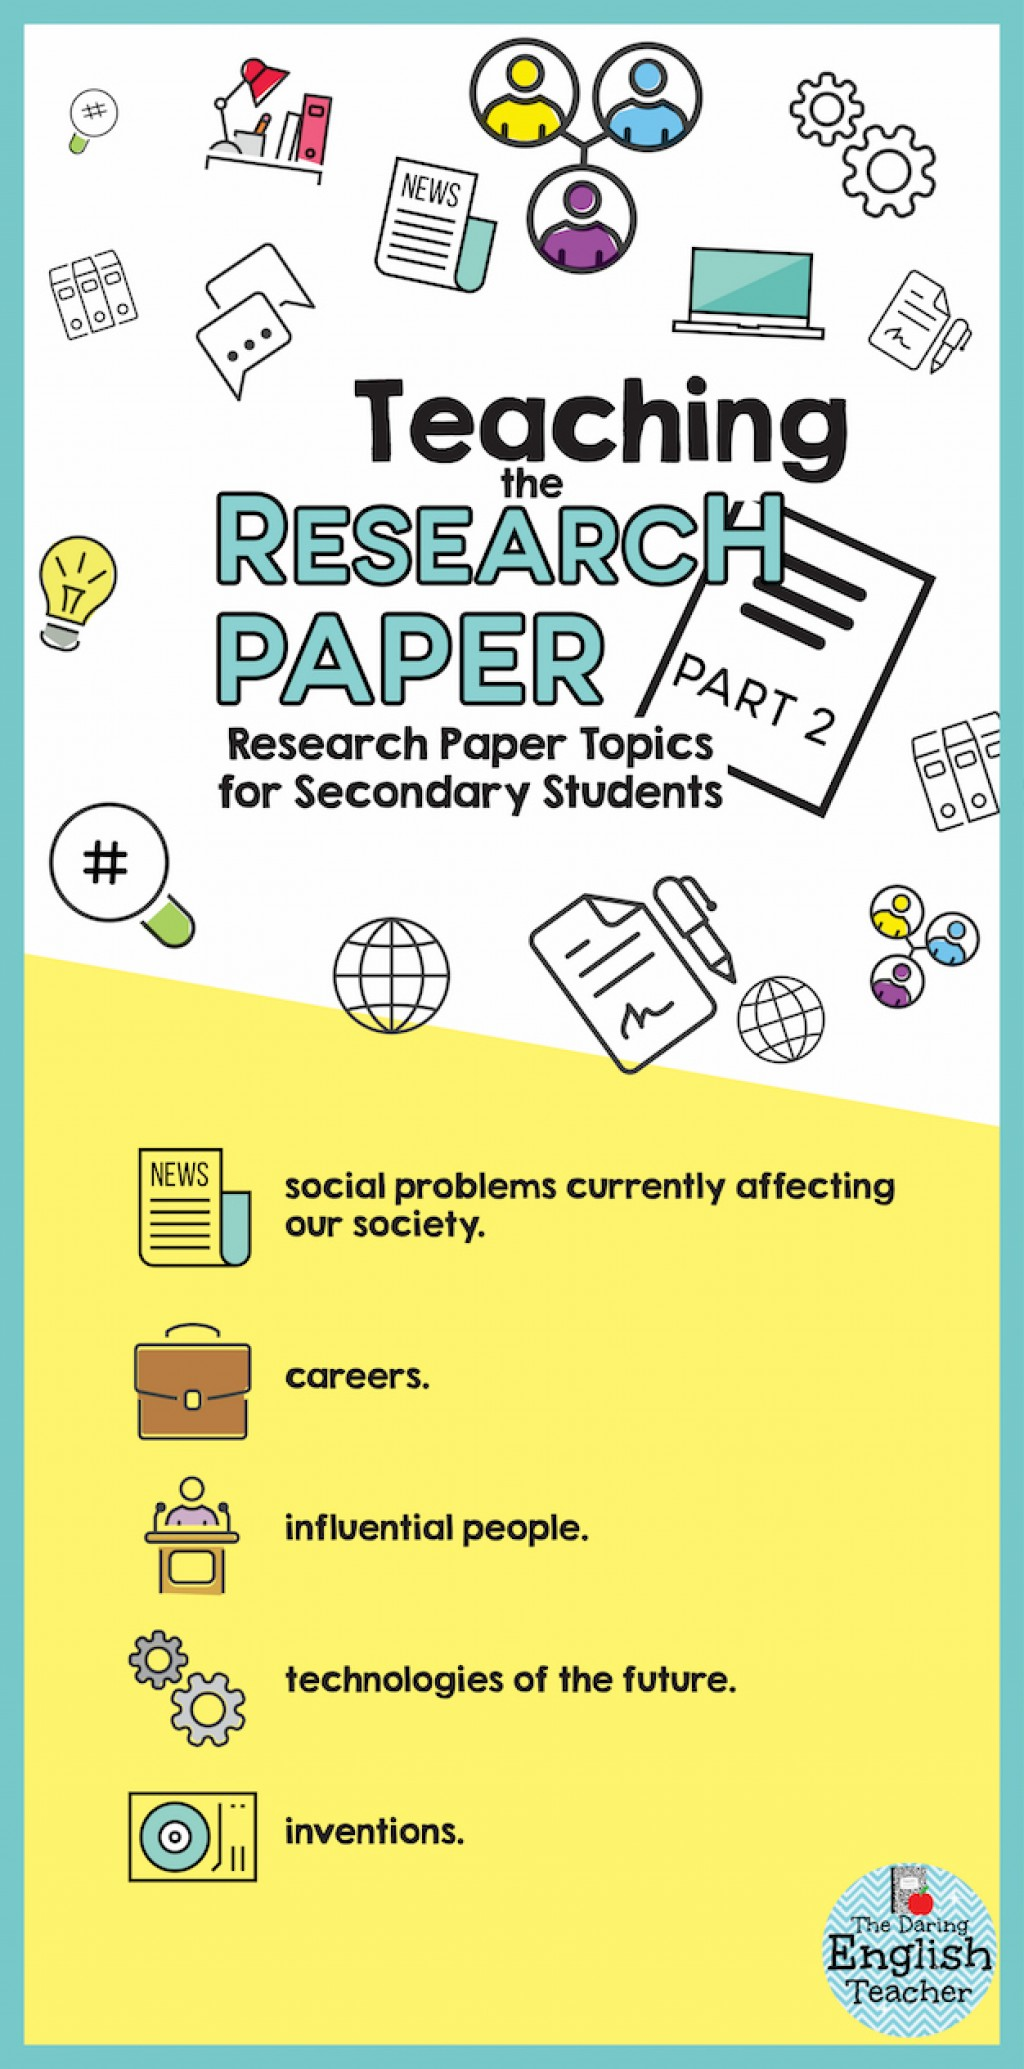 020 Infographic2bp22b2 Research Paper Topic For Unusual A Topics In Criminal Justice Psychology Business Administration Large